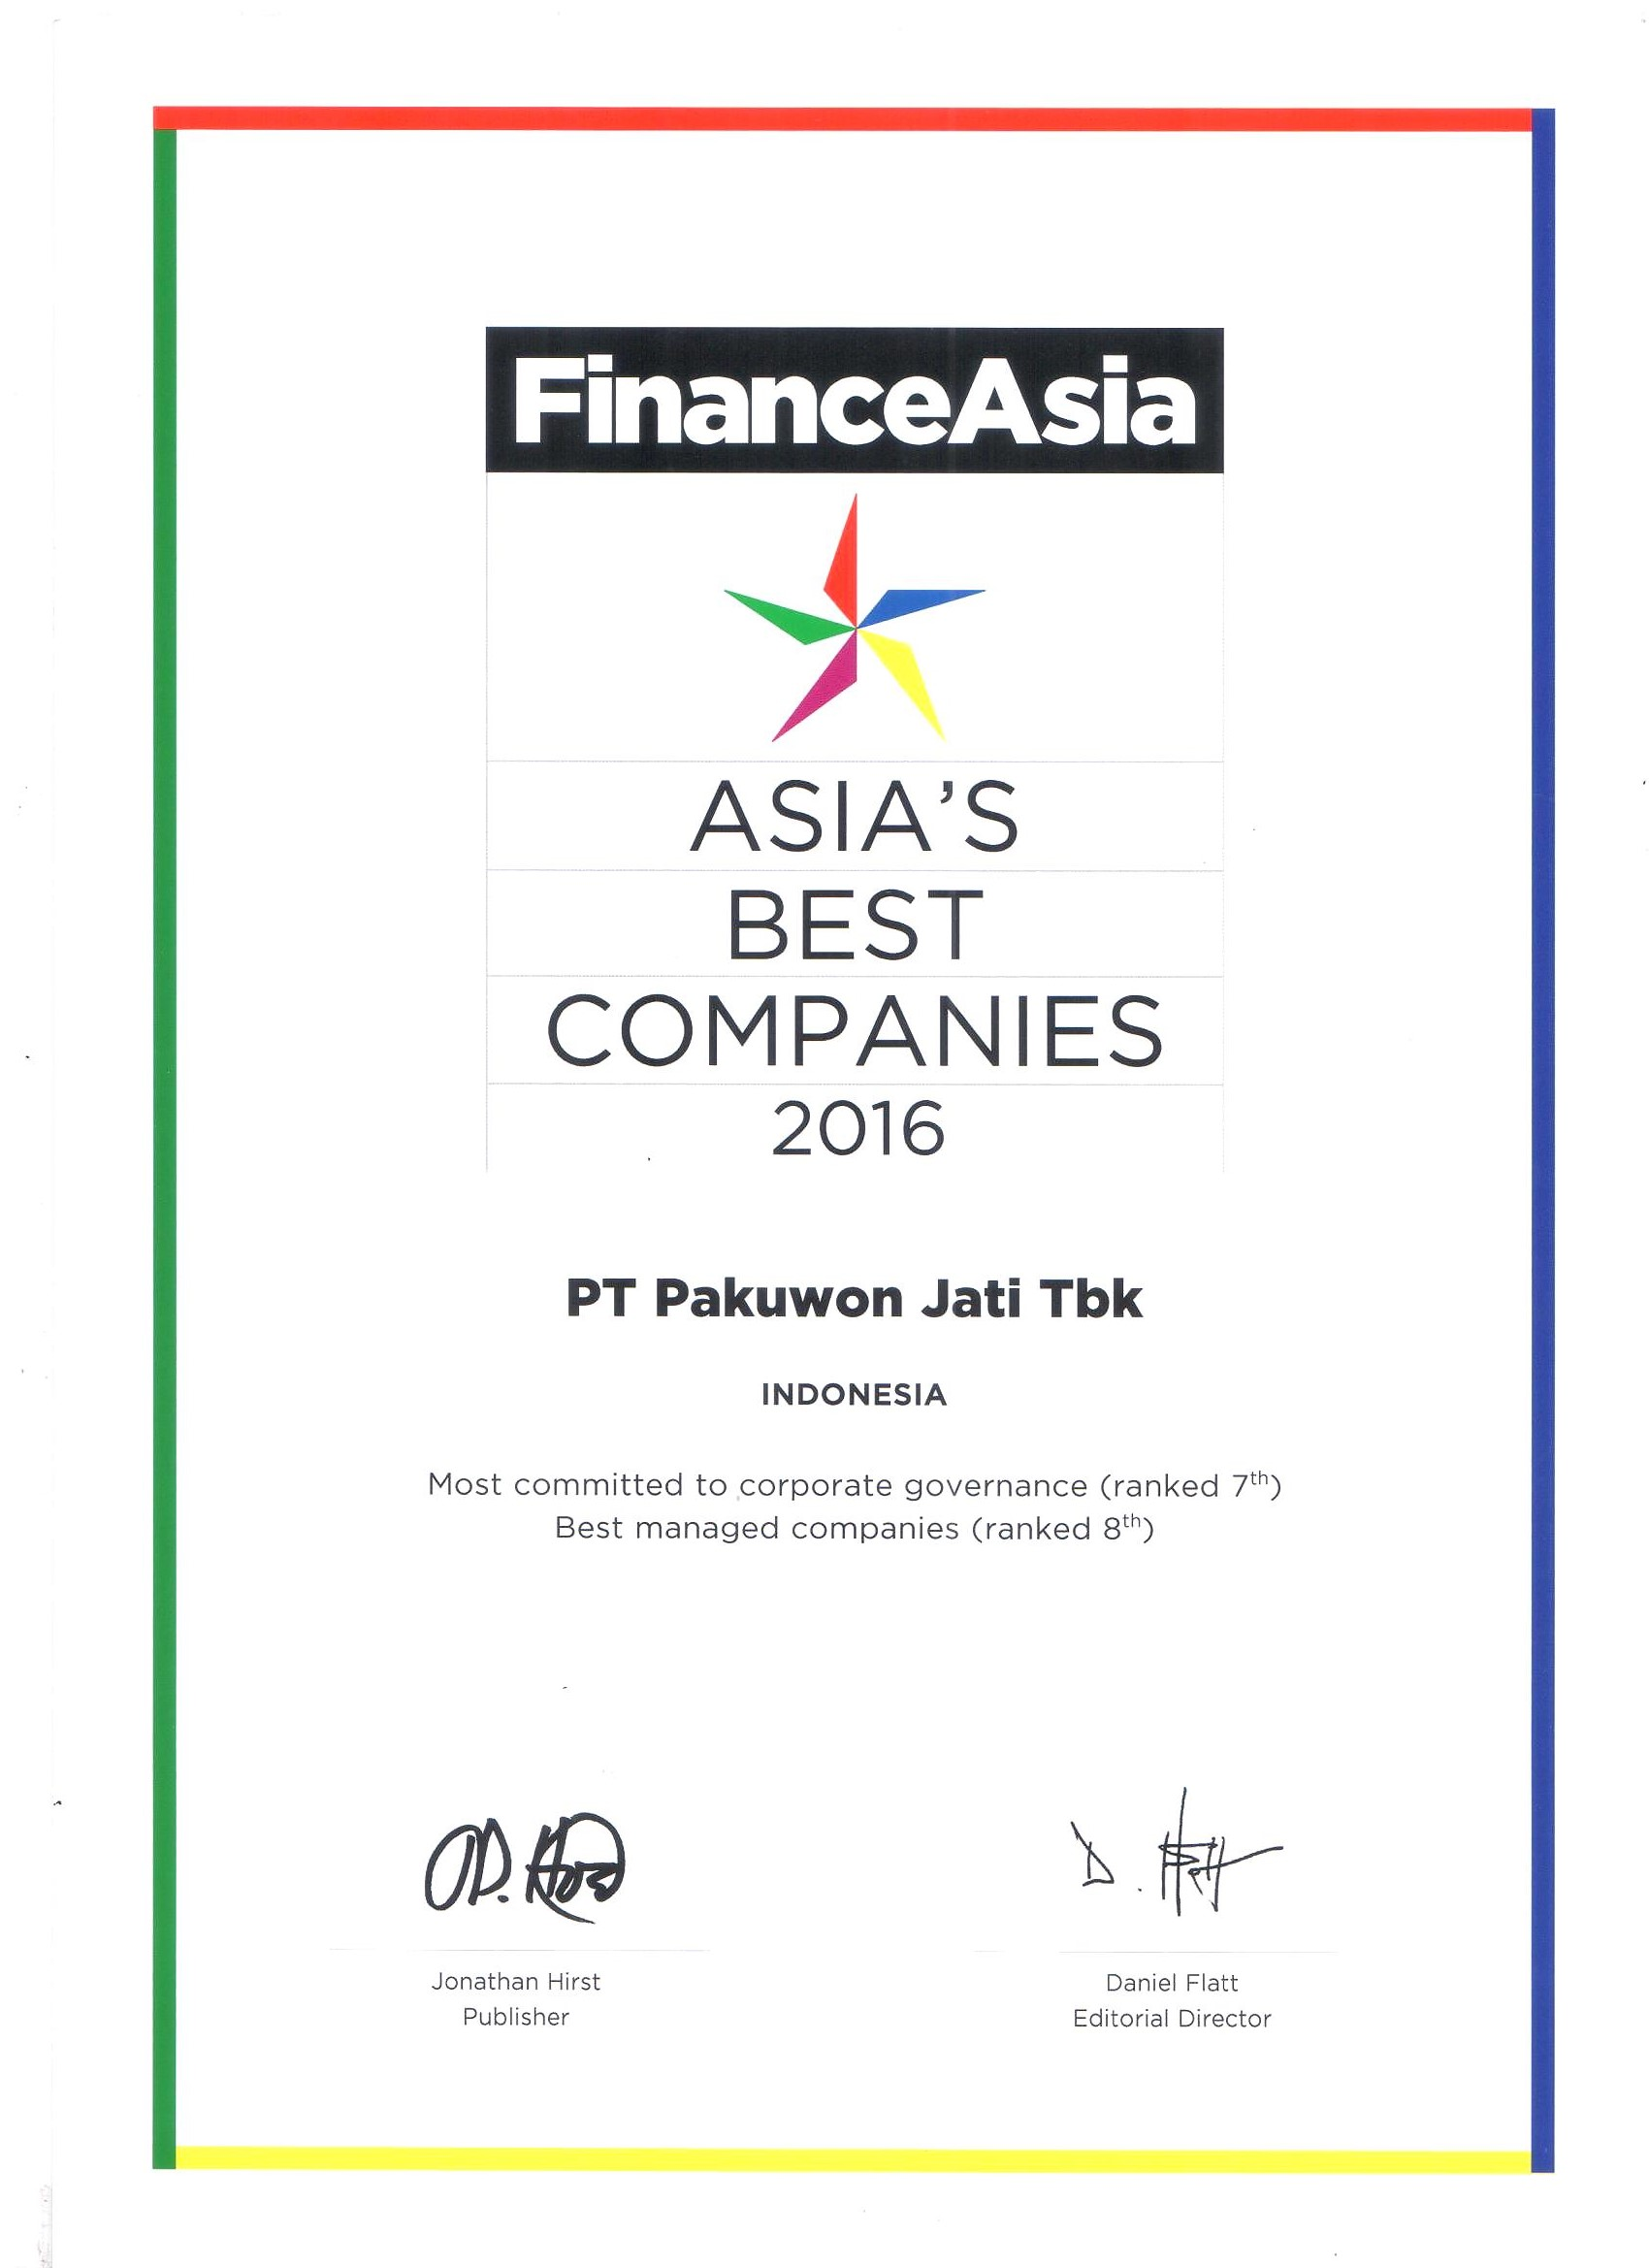 /public/files/image-companny/award-slider/AsiaBestCompanies2016.jpg